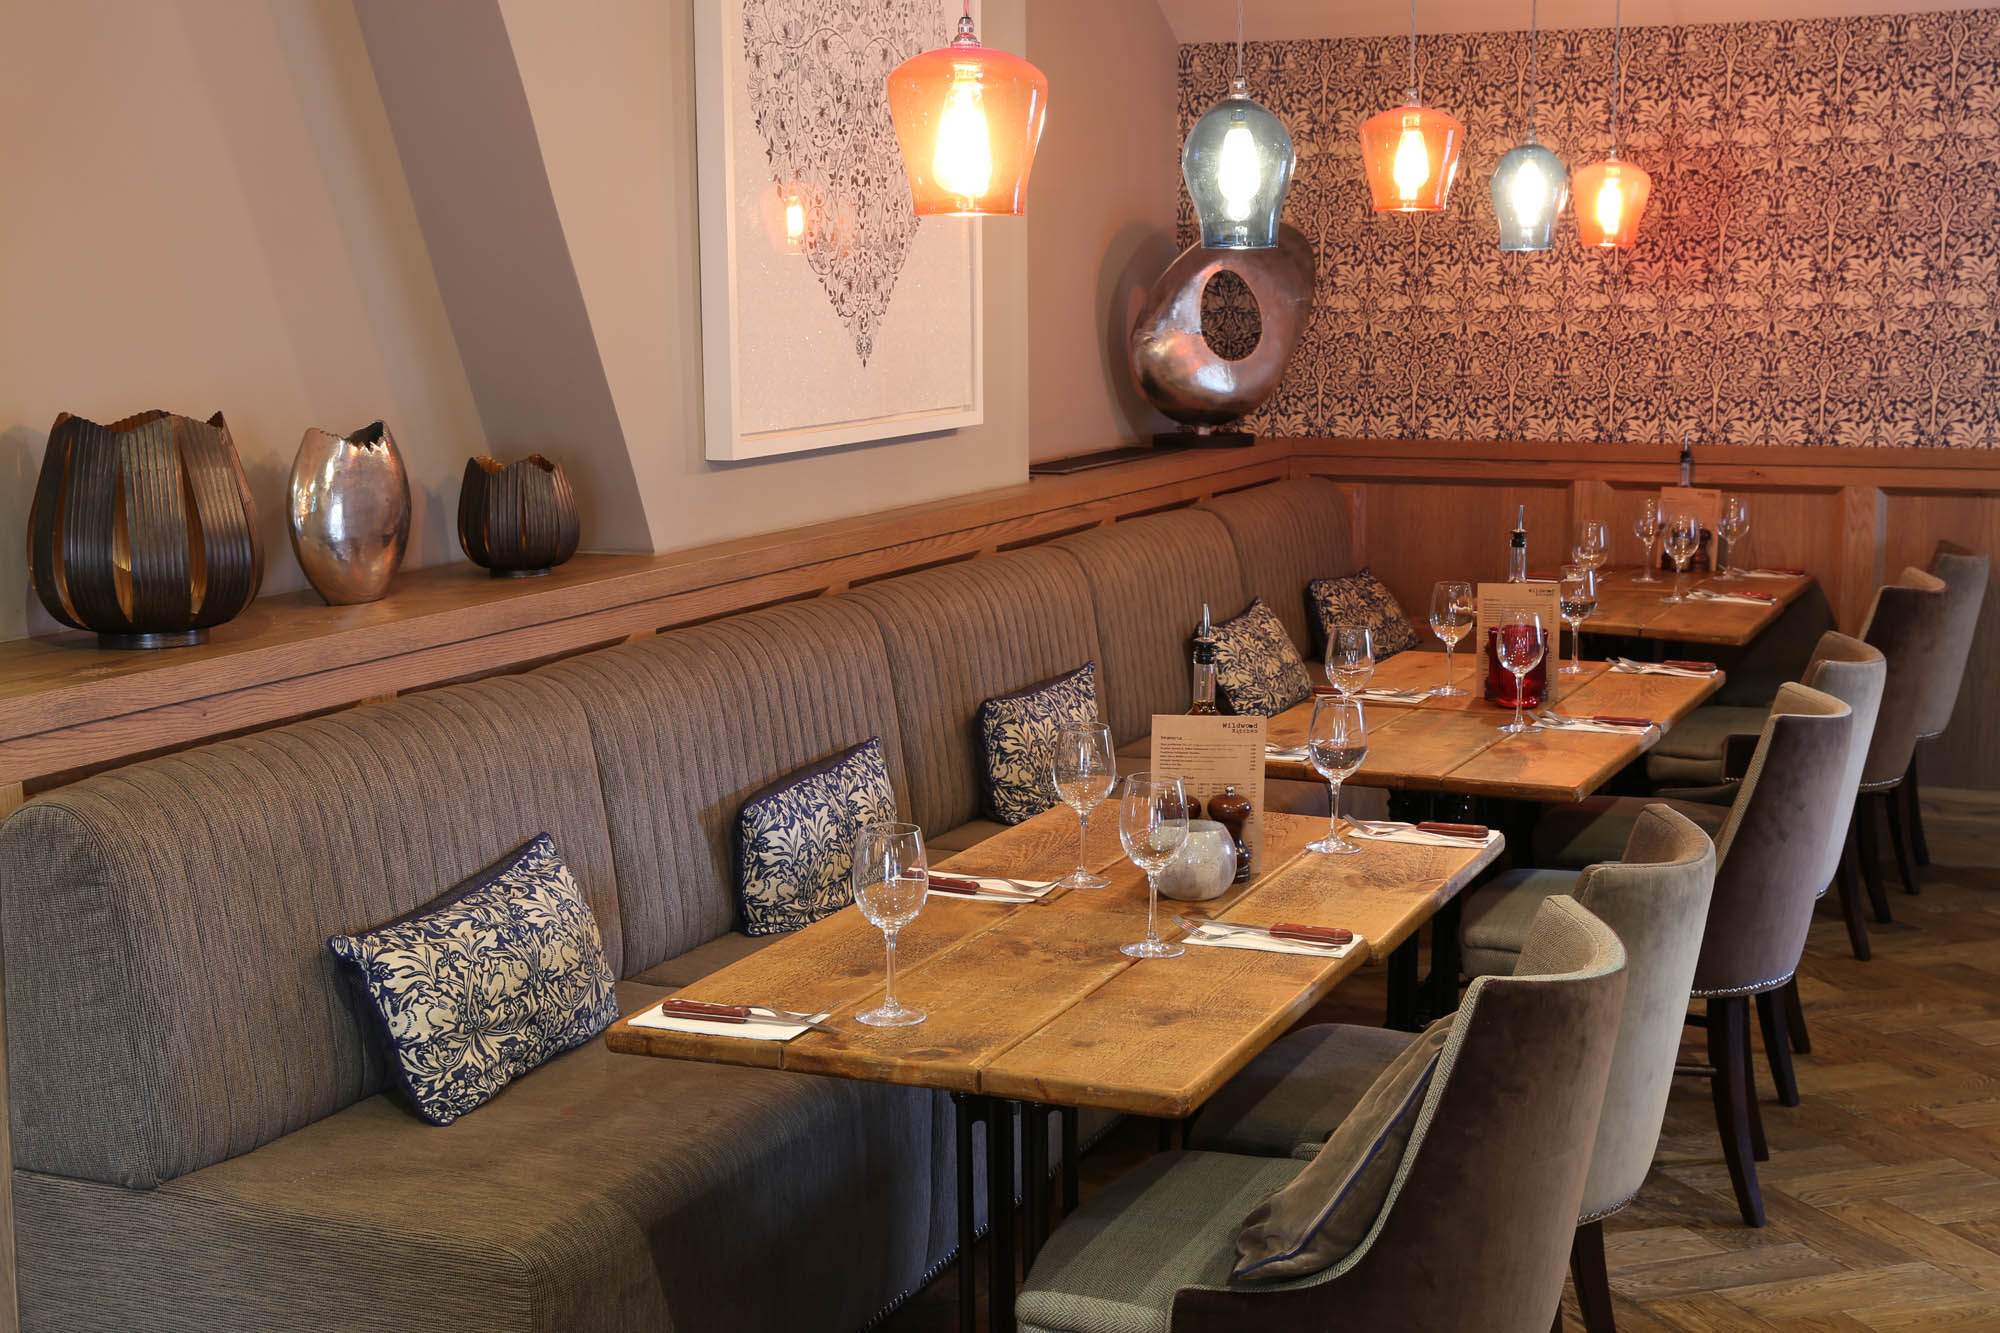 wildwood kitchen - oakham | food & drink